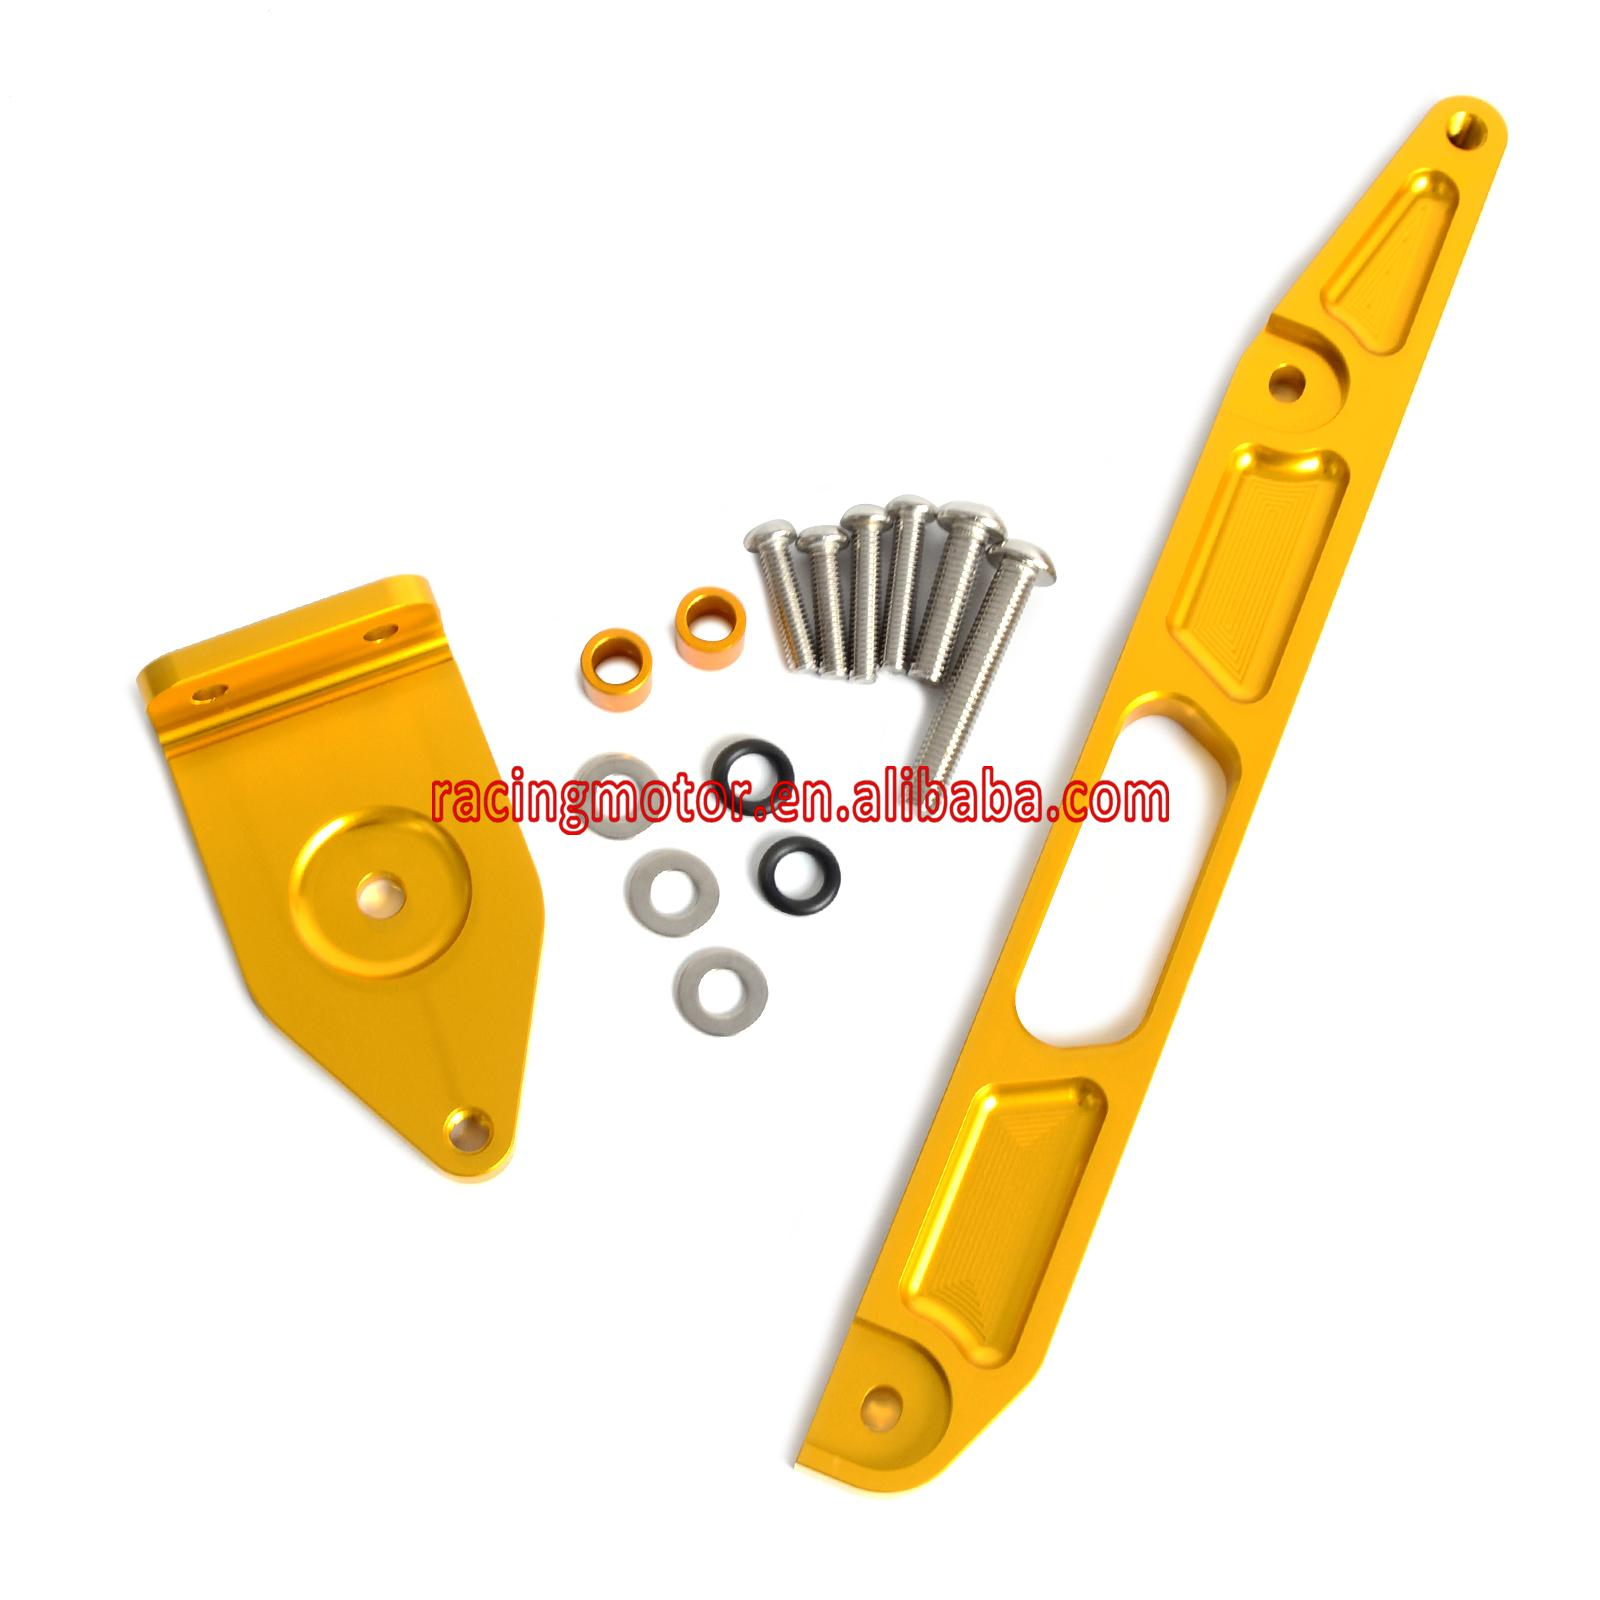 Gold CNC Mounting Kit Bracket for Yamaha XJR1300 2002 - 2015 2004 2005 2006 2008 2010 2013 2014 motorcycle mounting bracket kit for yamaha fz1 fazer 2006 2015 2007 2008 2009 2010 2011 2012 2013 2014